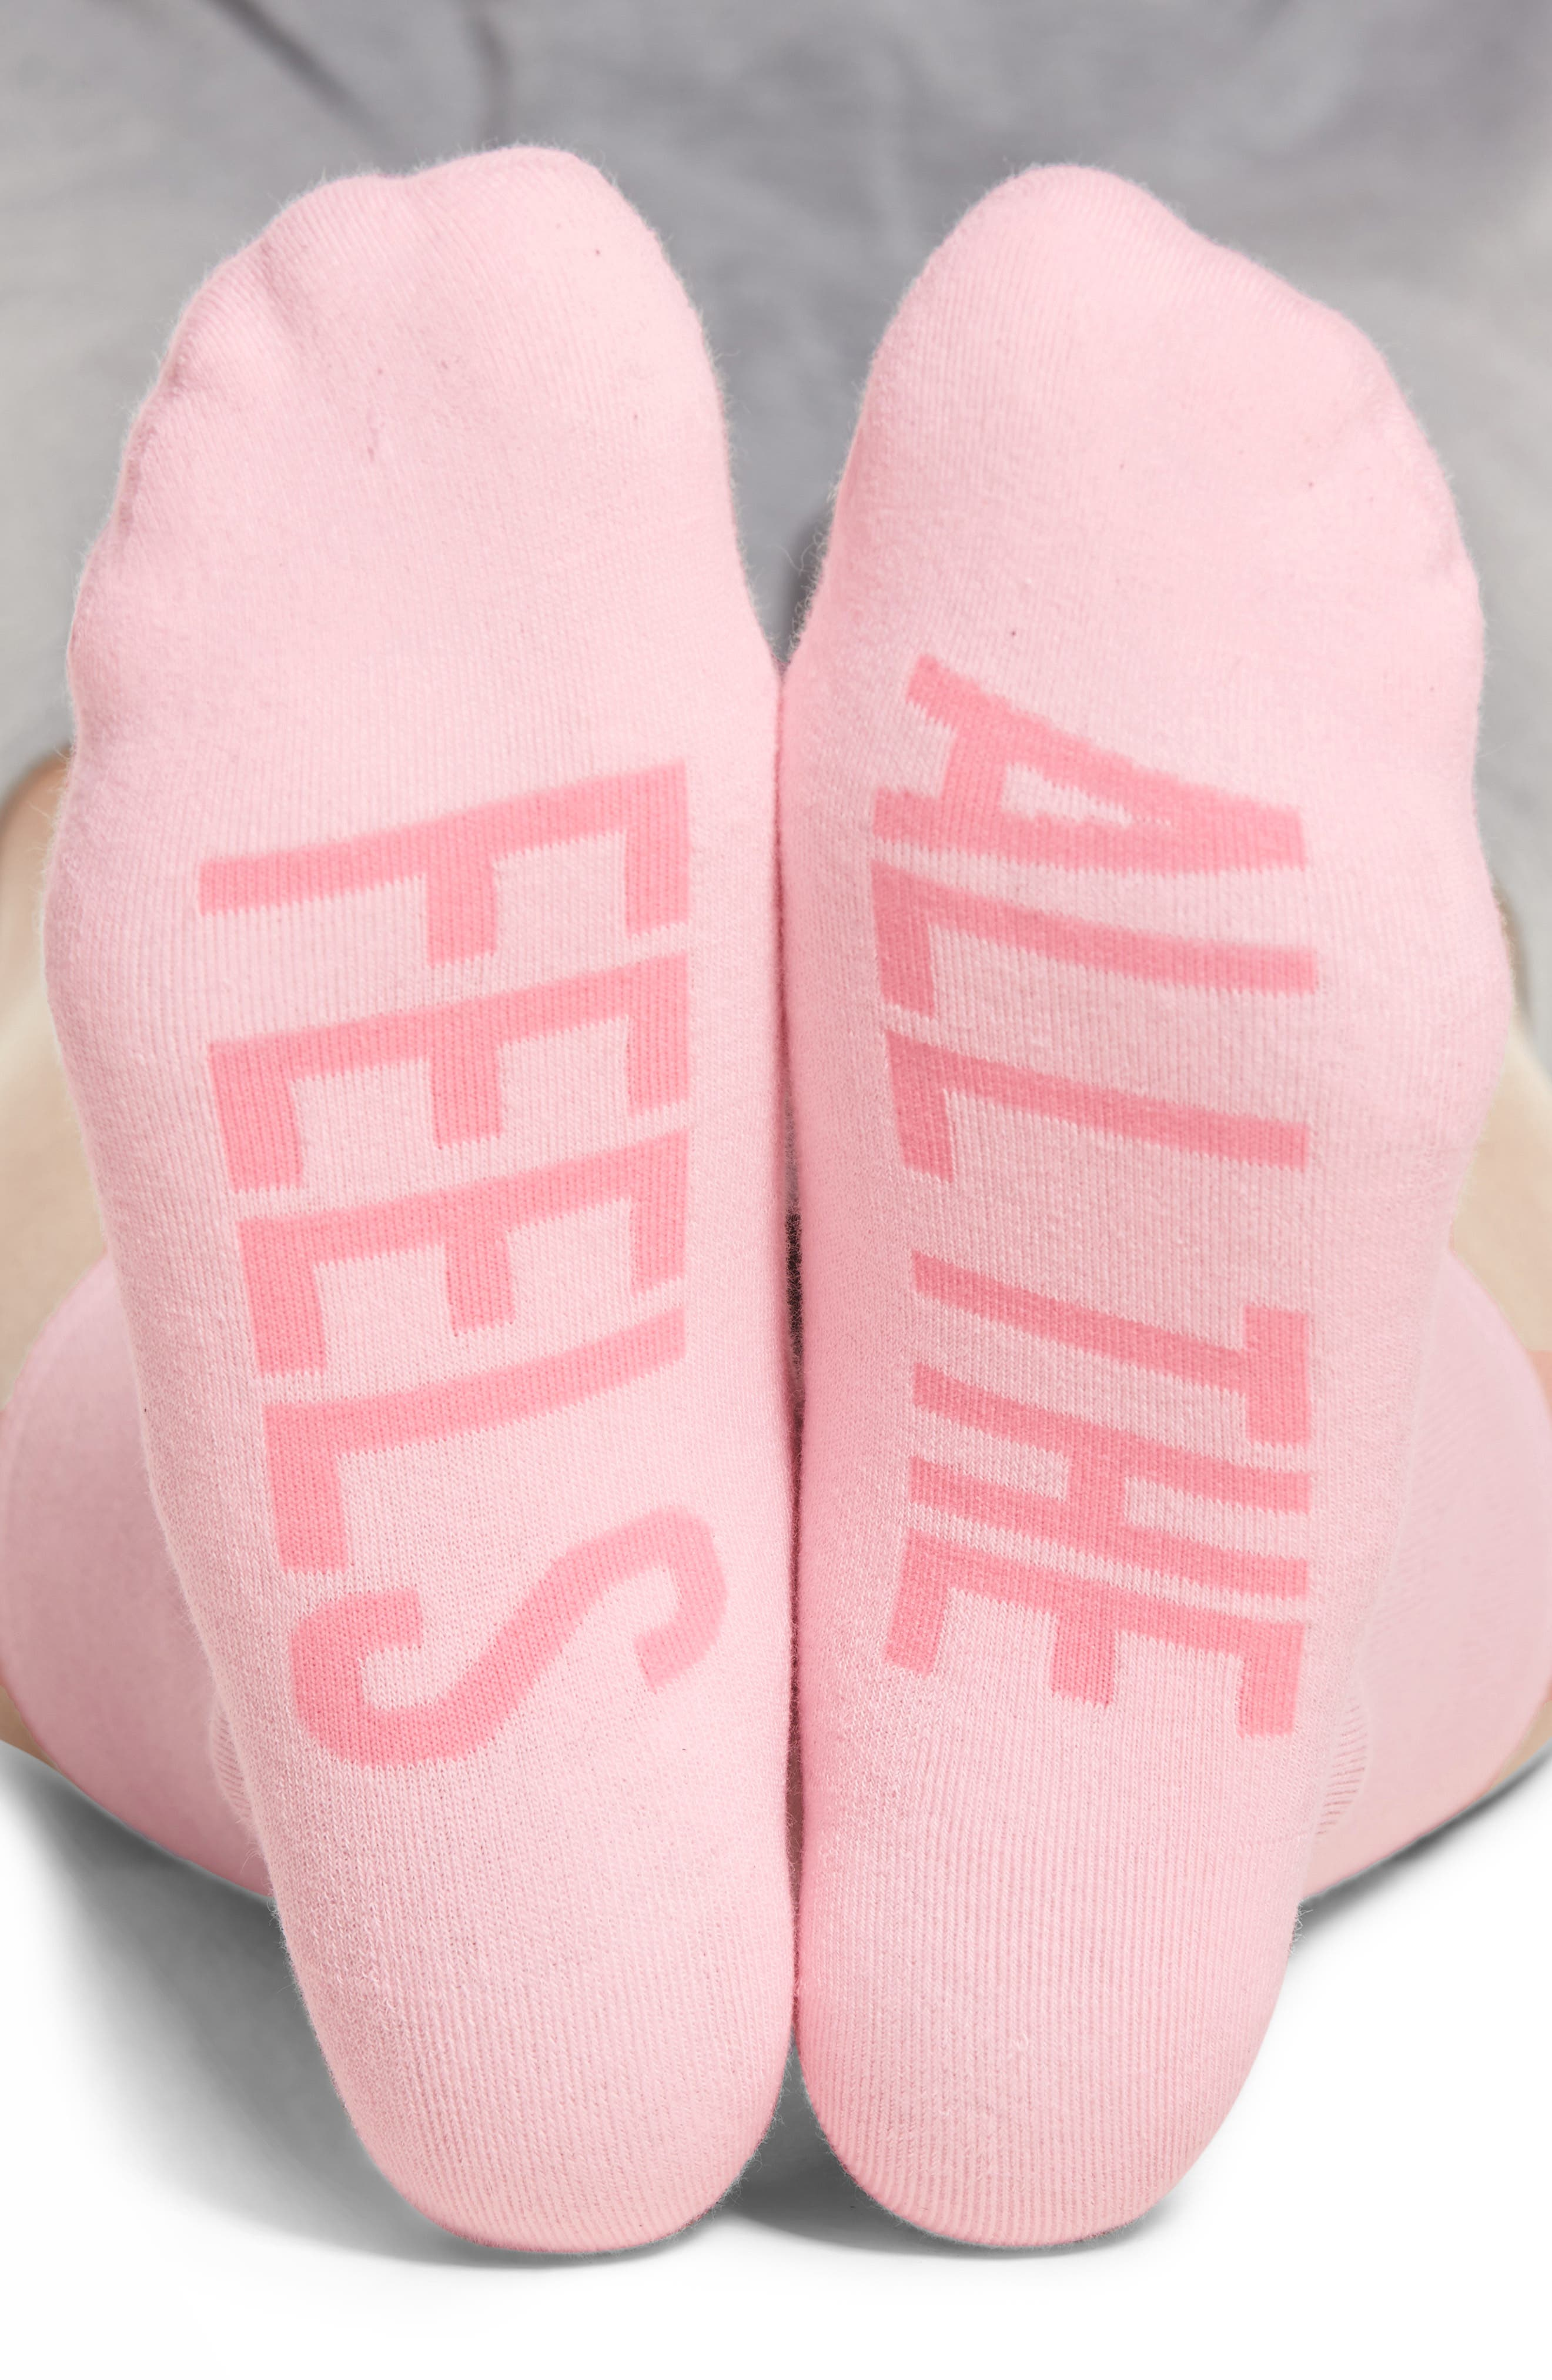 All the Feels Crew Socks,                         Main,                         color, Light Pink